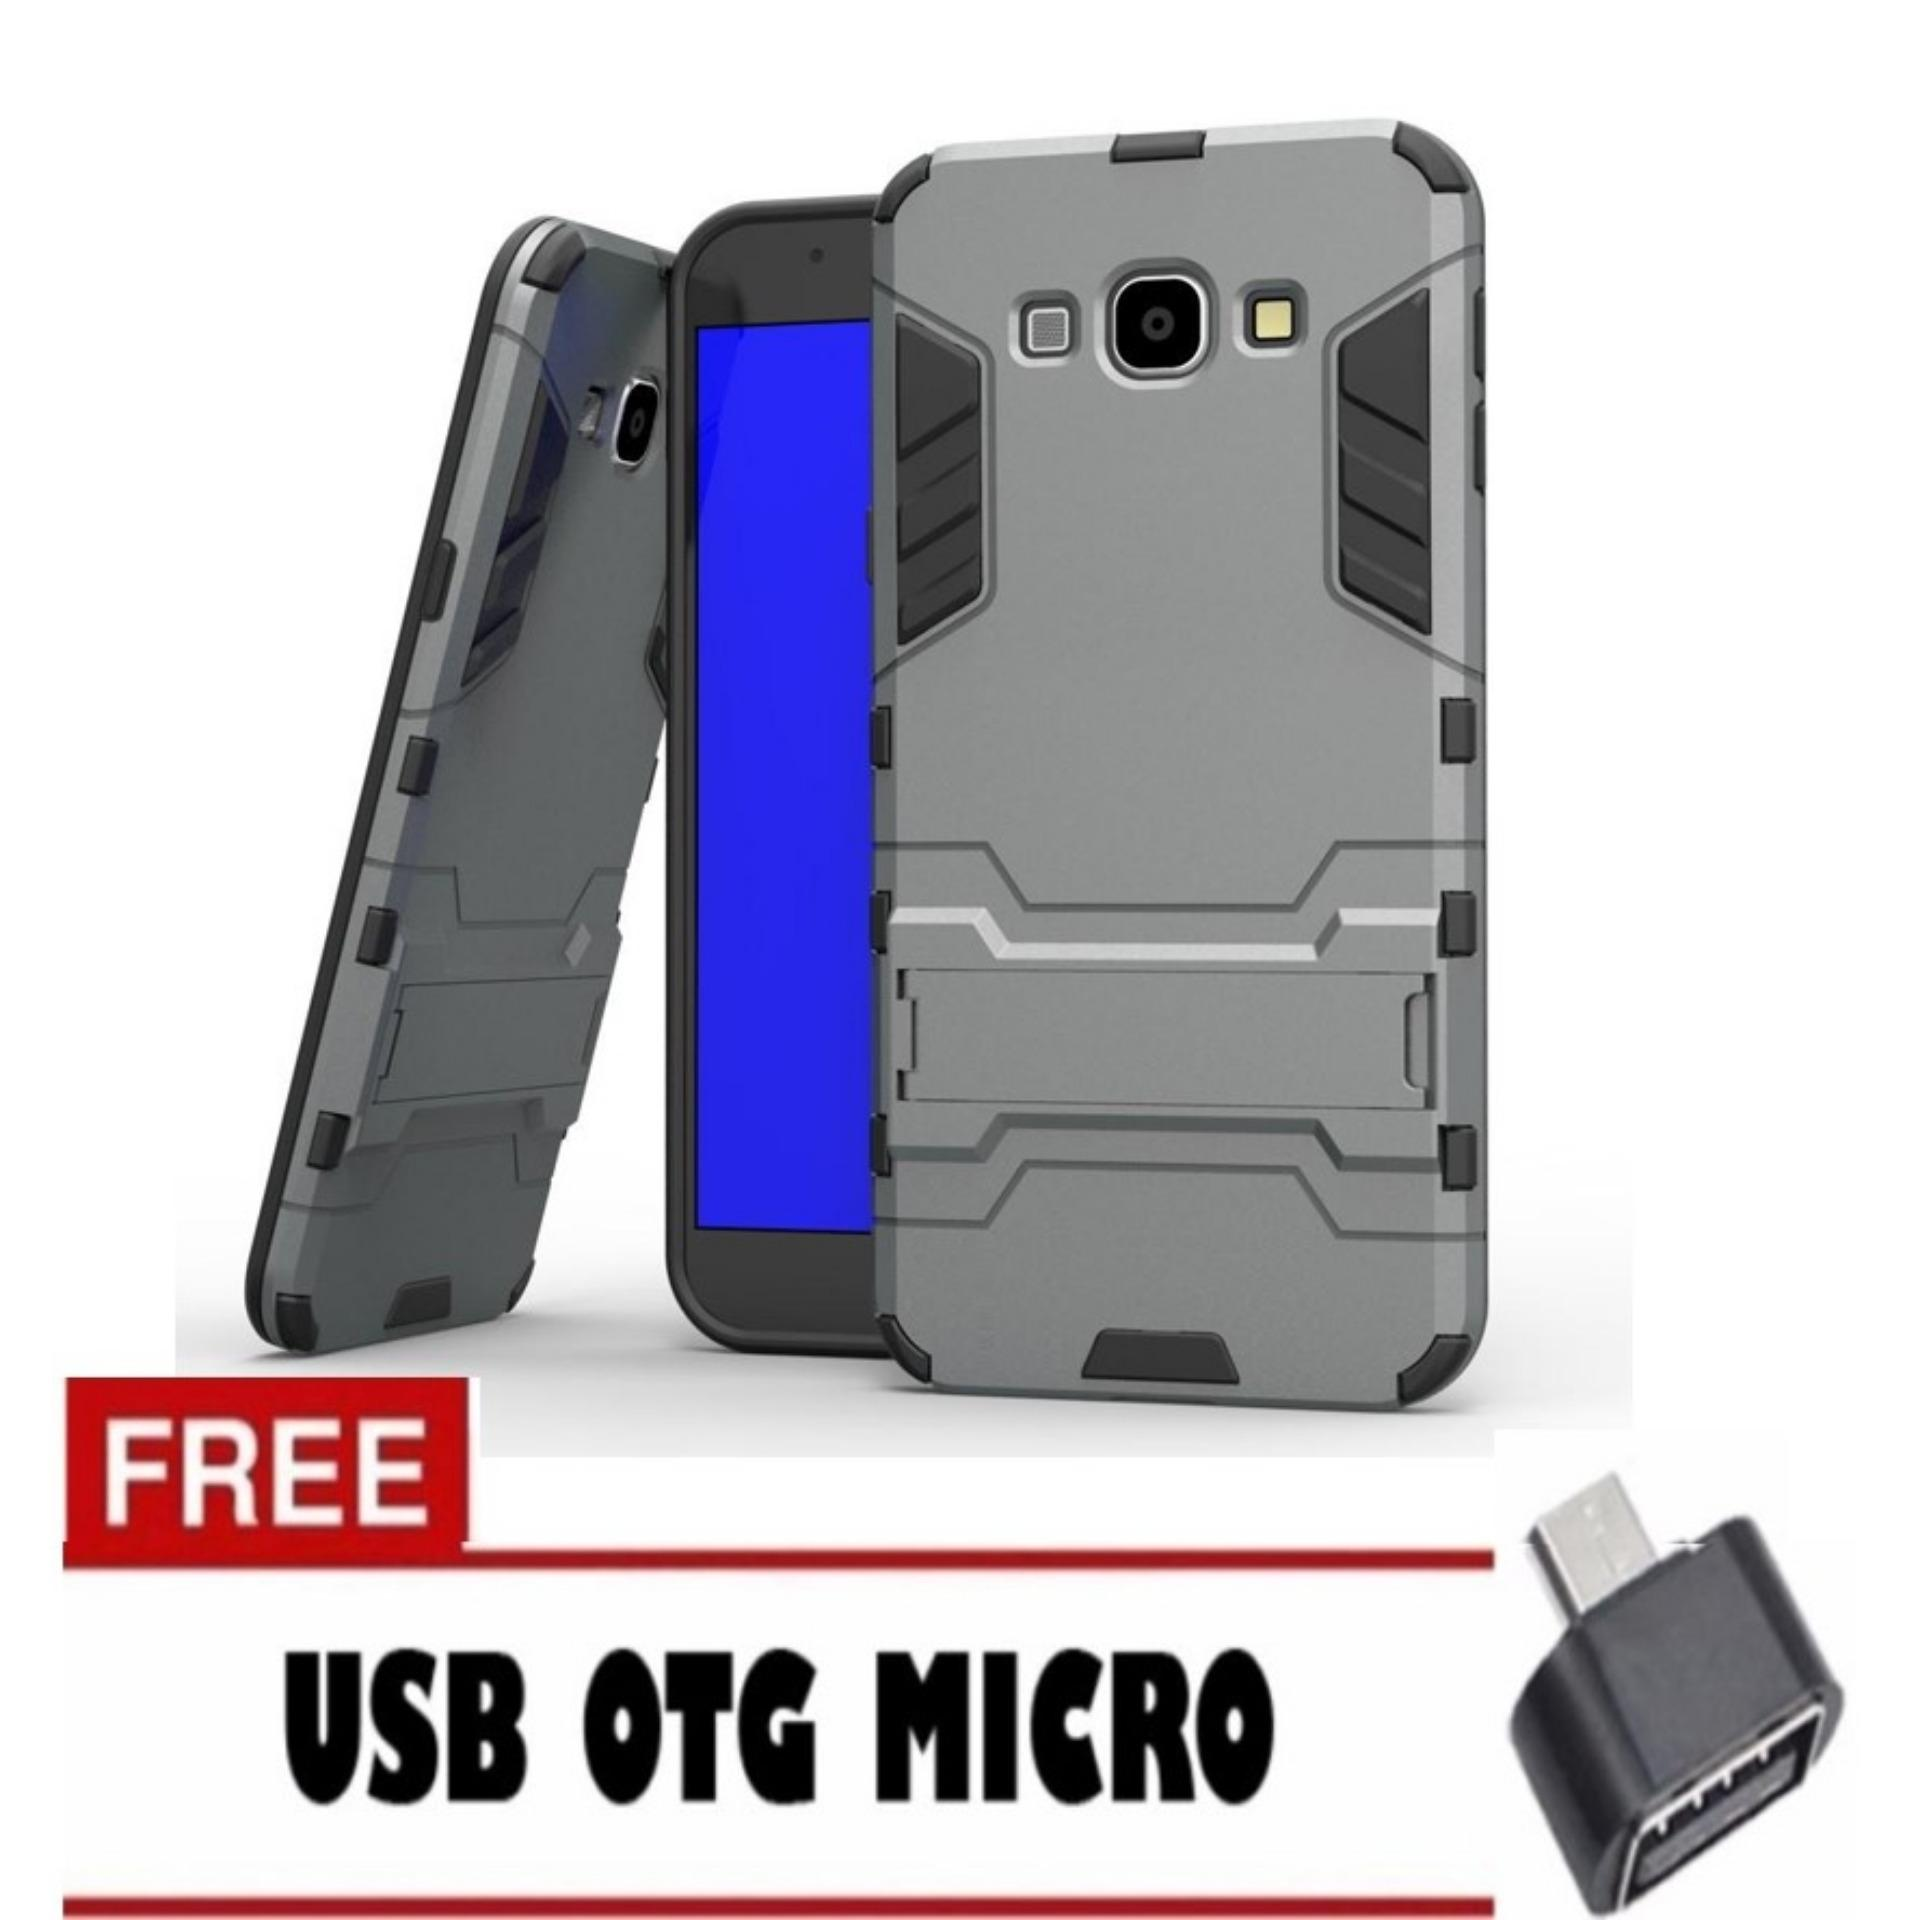 Case Mnc Samsung Galaxy A7 2017 Sm A720 Transformer Robot Casing Source · MNC I CASE EXECUTIVE IRON MAN 2 IN 1 ROBOT WITH STAND FOR SAMSUNG GALAXY J2